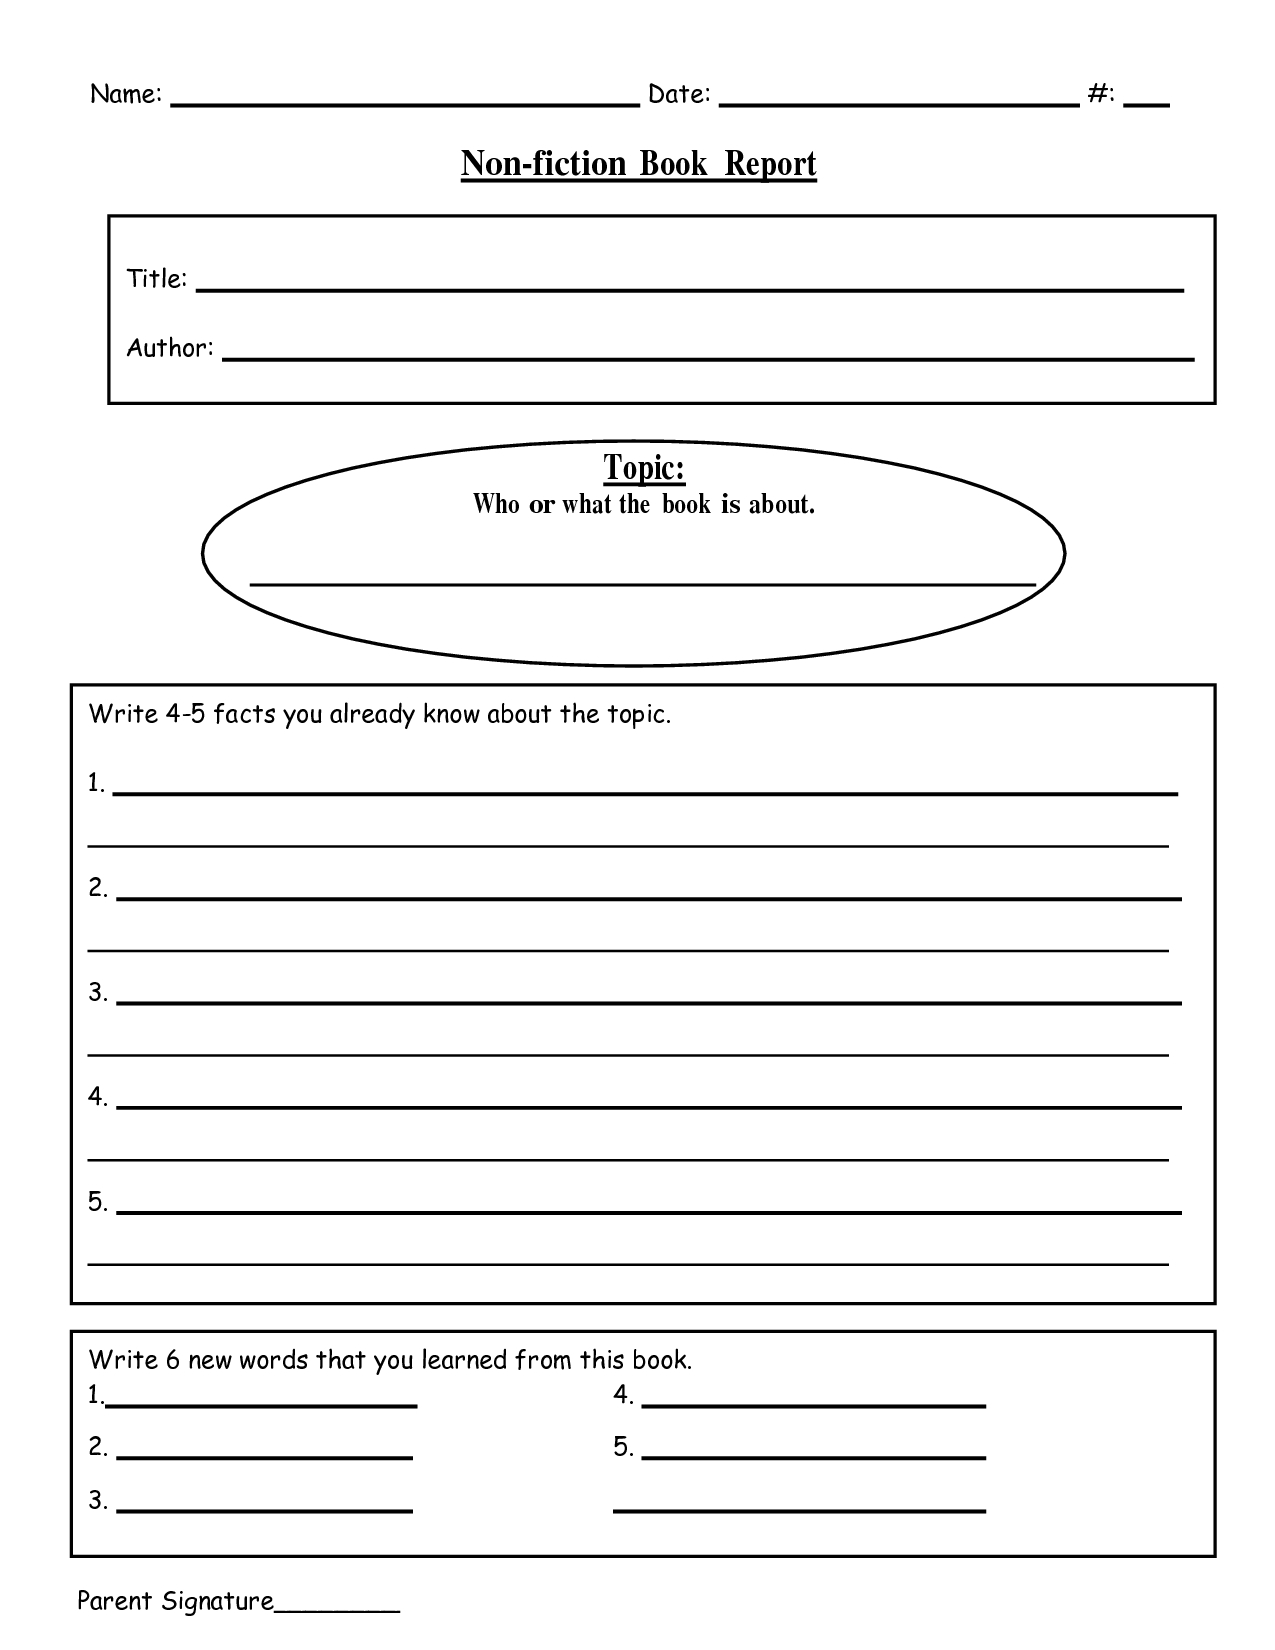 Free Printable Book Report Templates | Non-Fiction Book Report.doc - Free Printable Book Report Forms